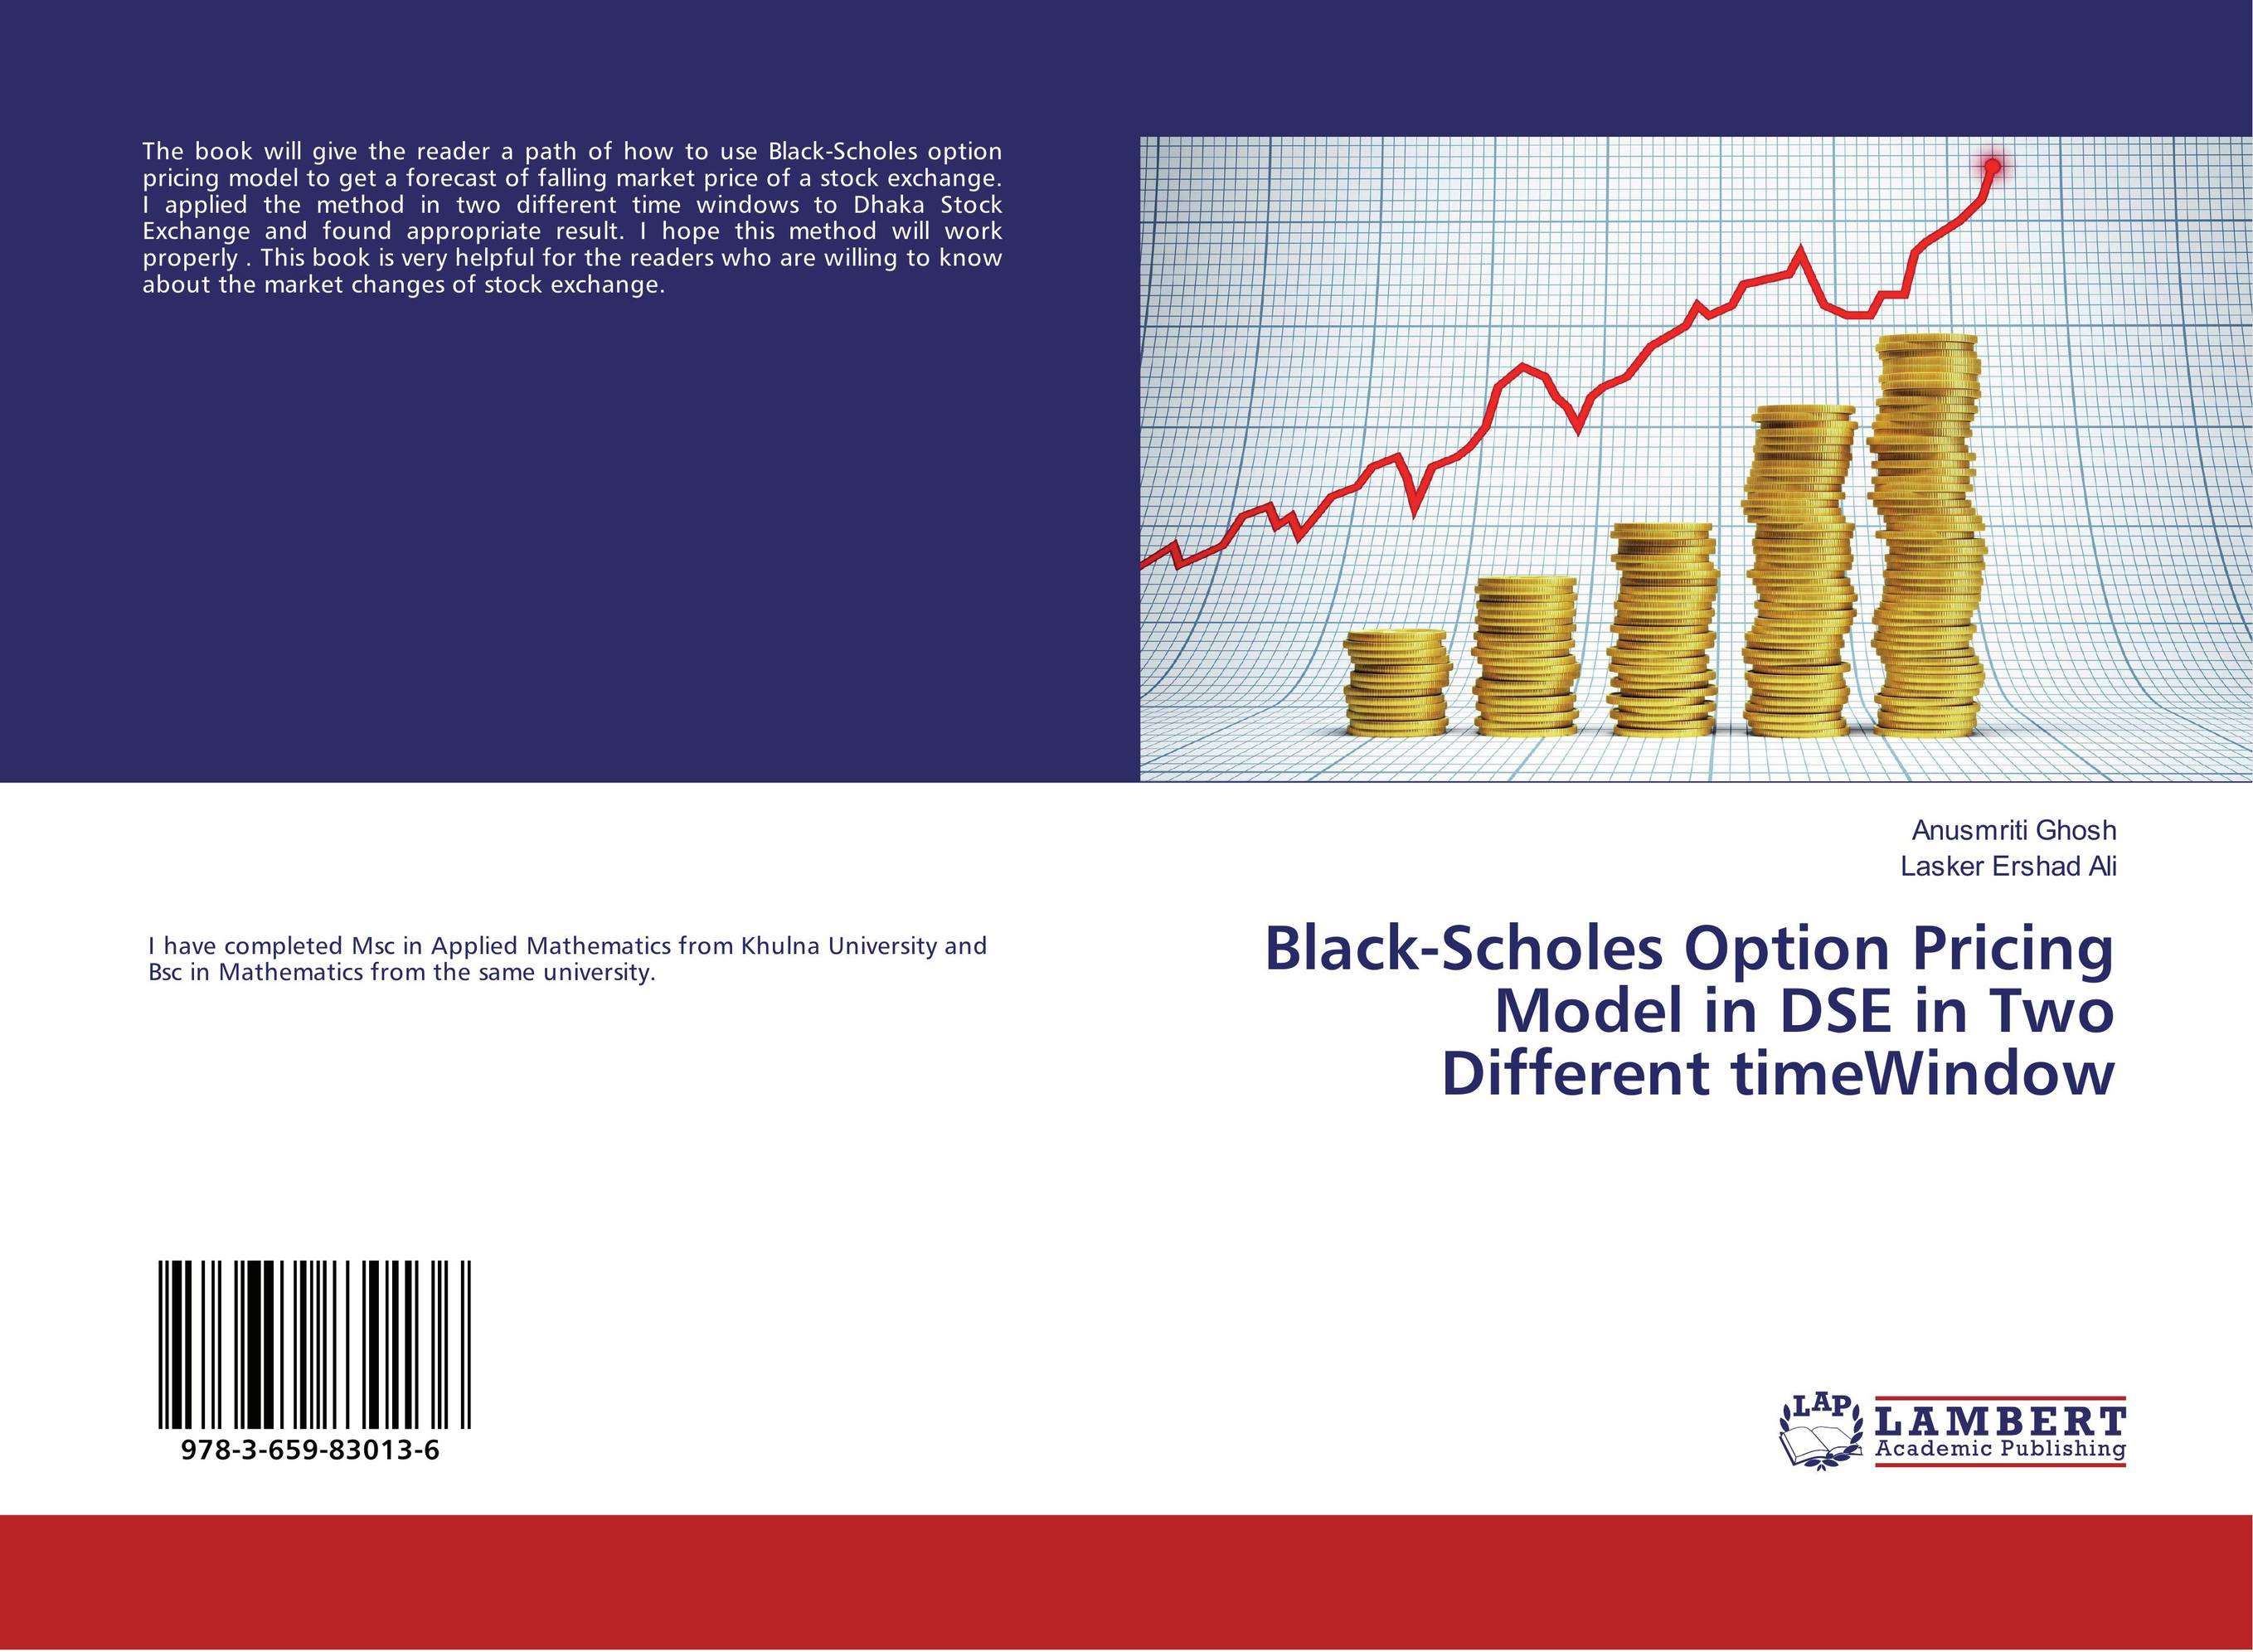 Black-Scholes Option Pricing Model in DSE in Two Different timeWindow